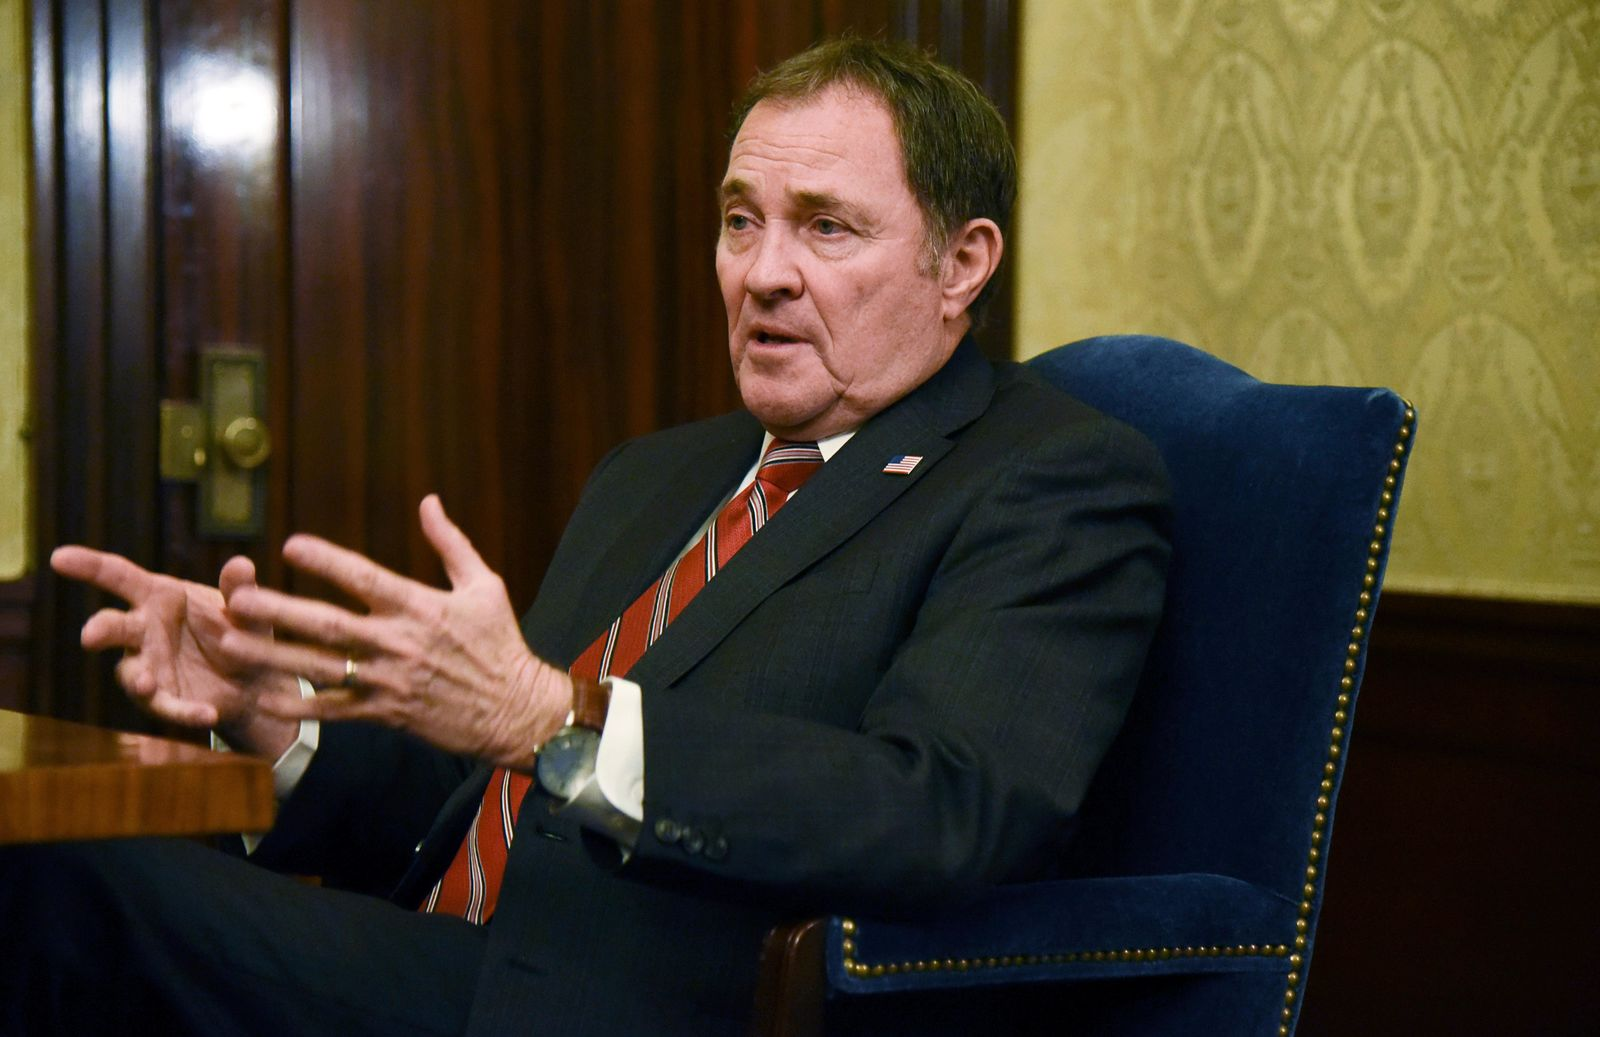 FILE - In this March 14, 2019, file photo, Utah Gov. Gary Herbert speaks during an interview on the final day of the legislative session at the Utah state Capitol in Salt Lake City. (Francisco Kjholseth/The Salt Lake Tribune via AP, File)